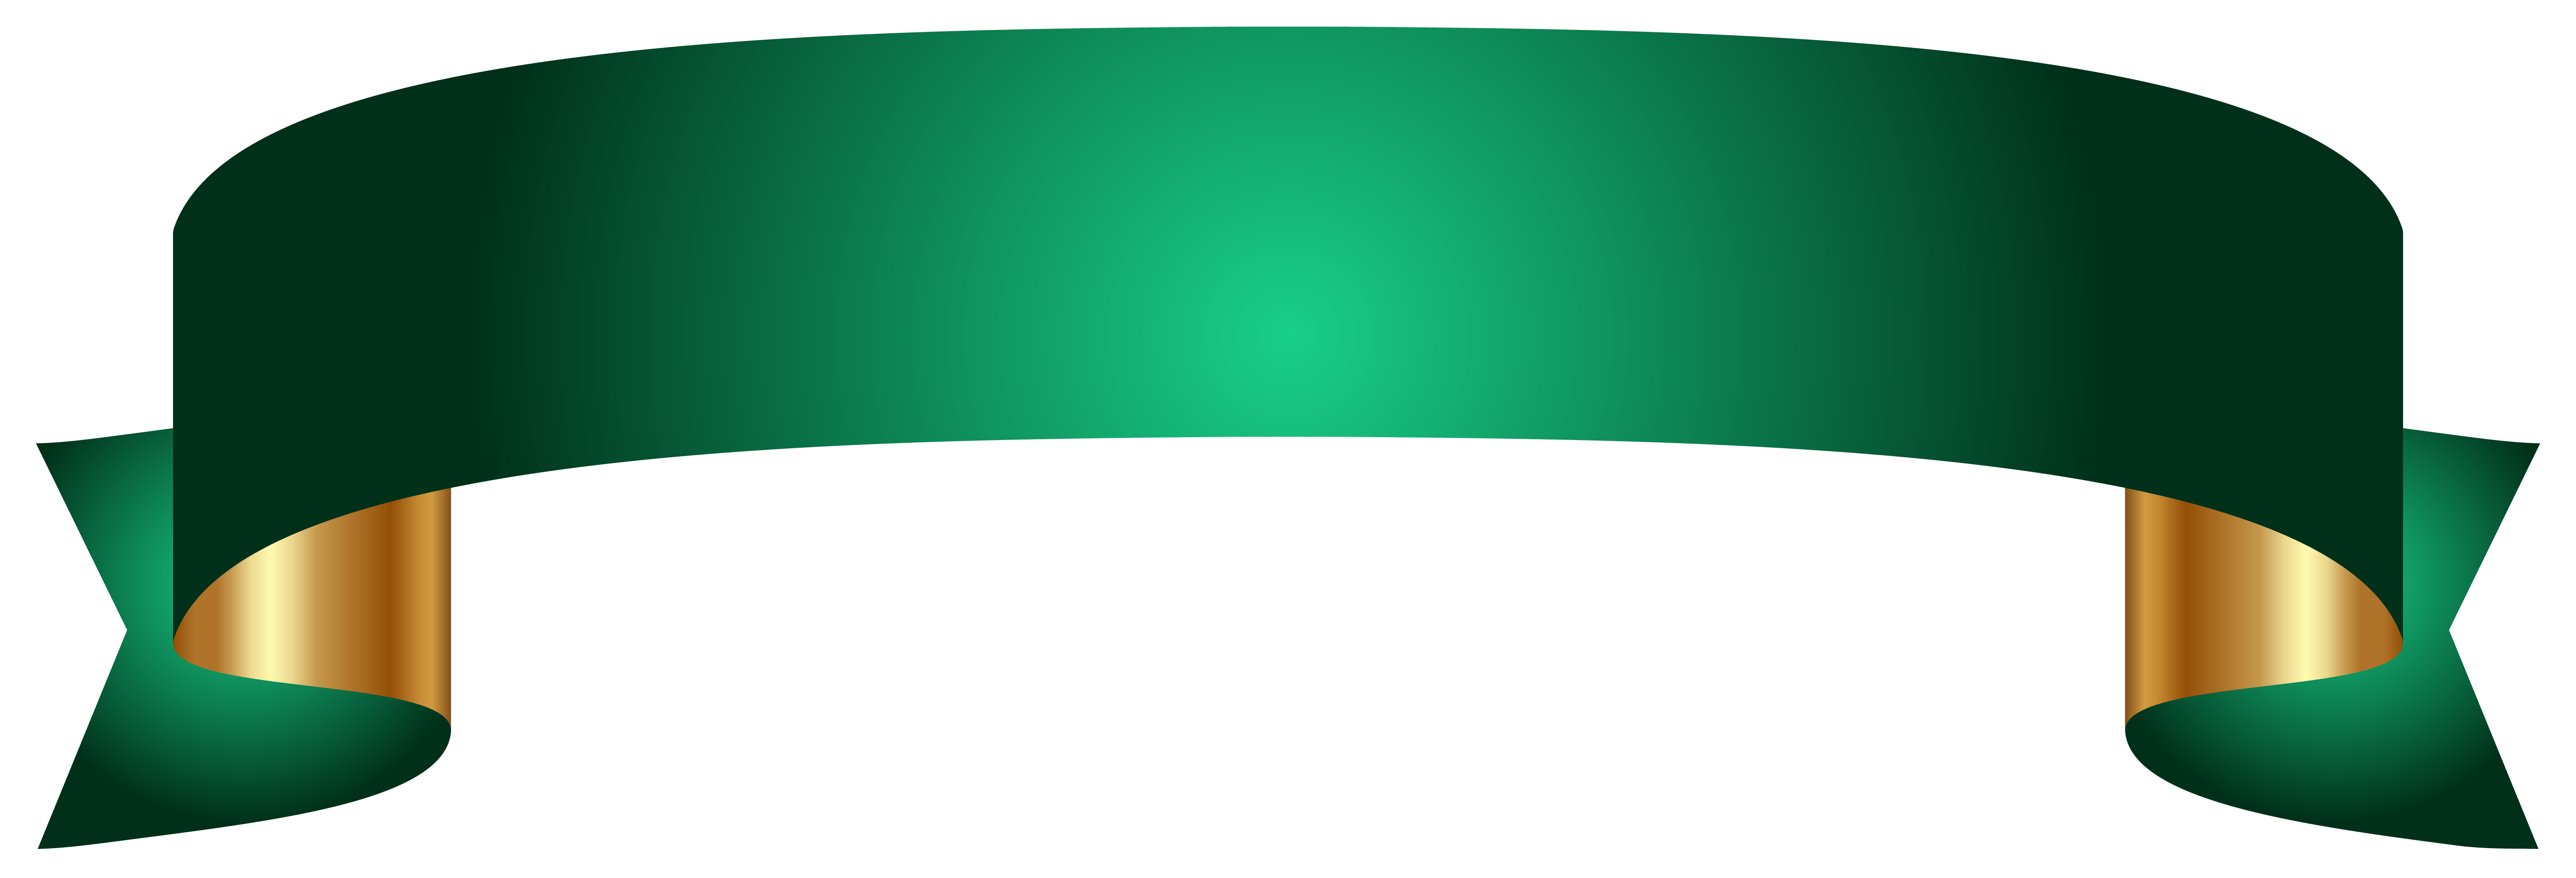 picture stock Banners transparent clear. Green banner png clip